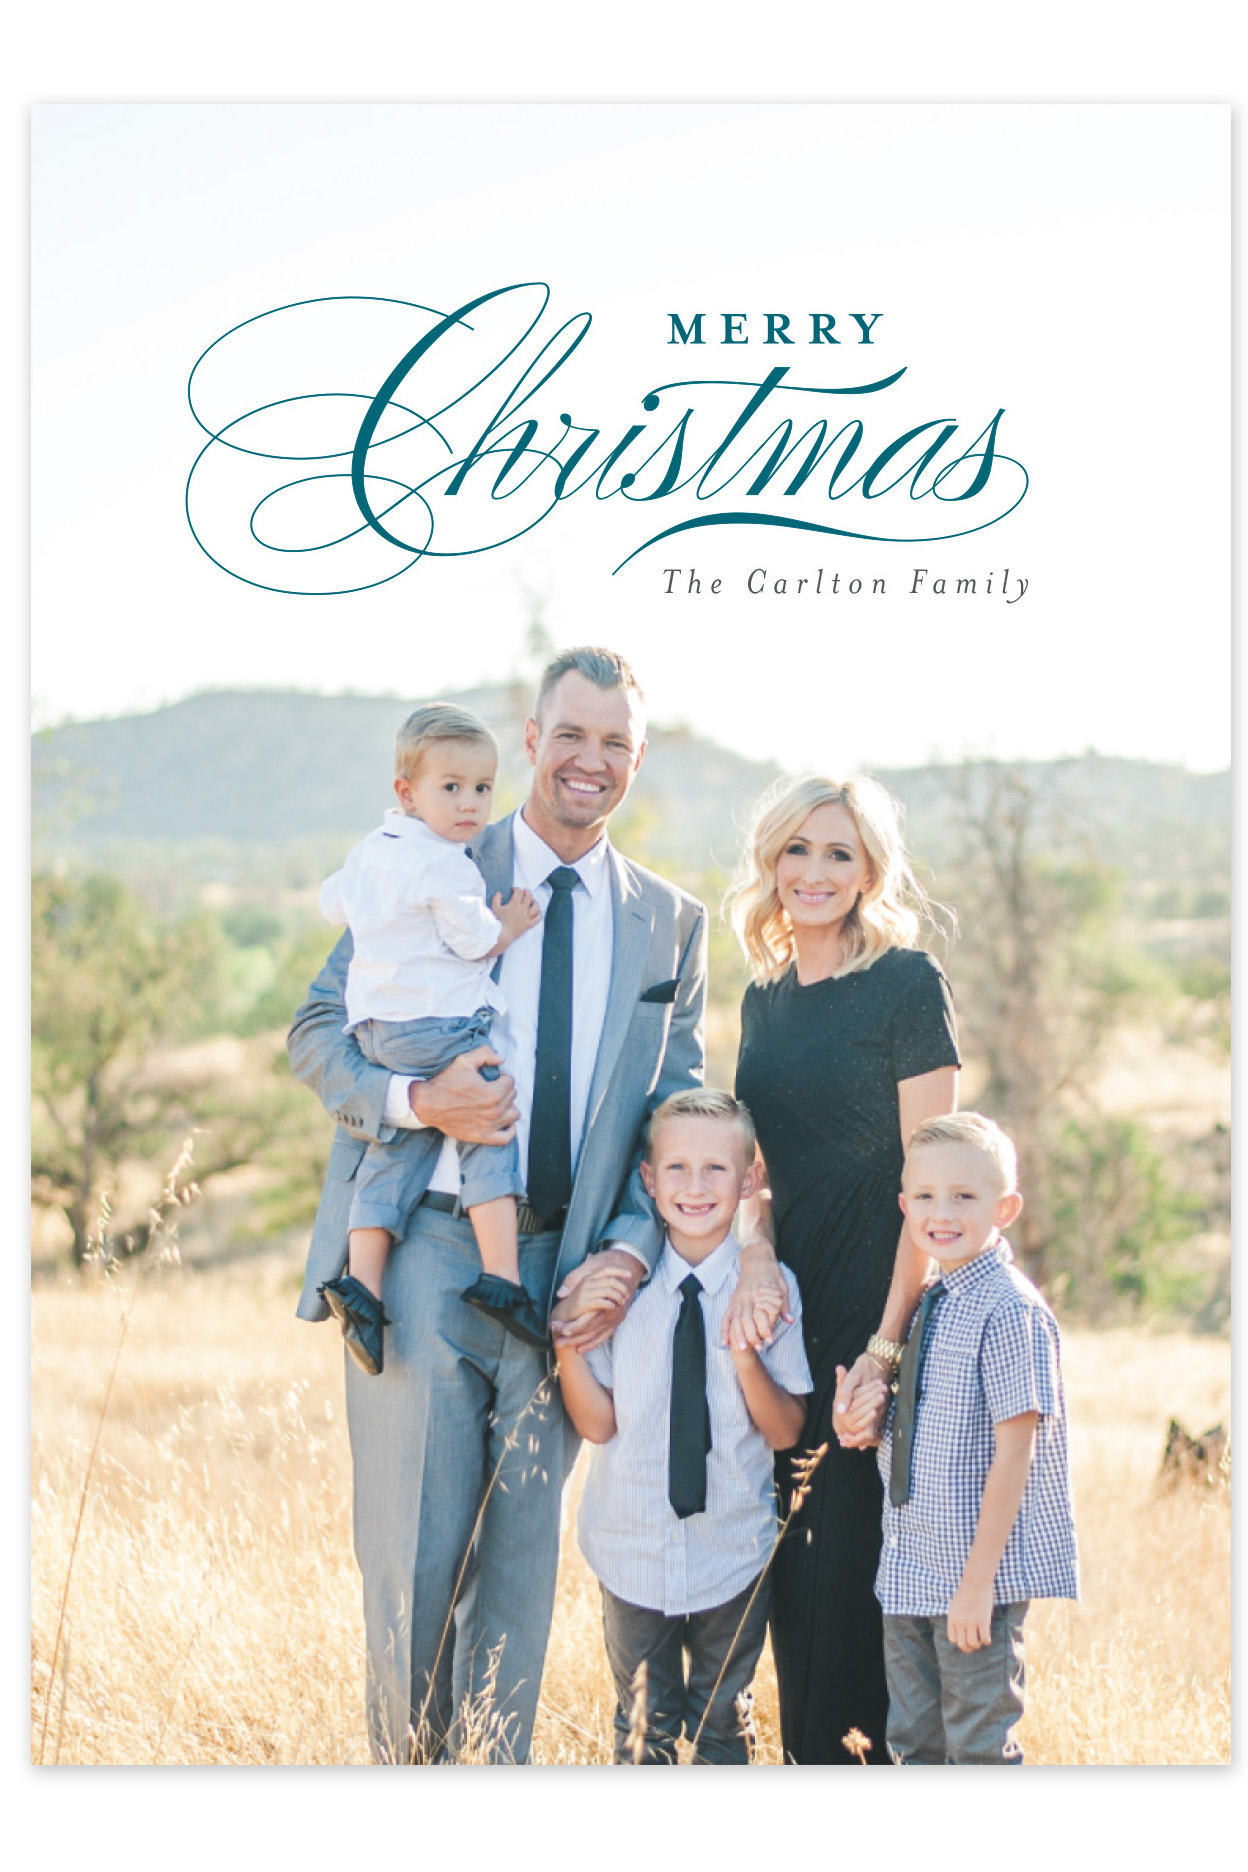 25 Funny Christmas Card Ideas - Family Christmas Card Photos